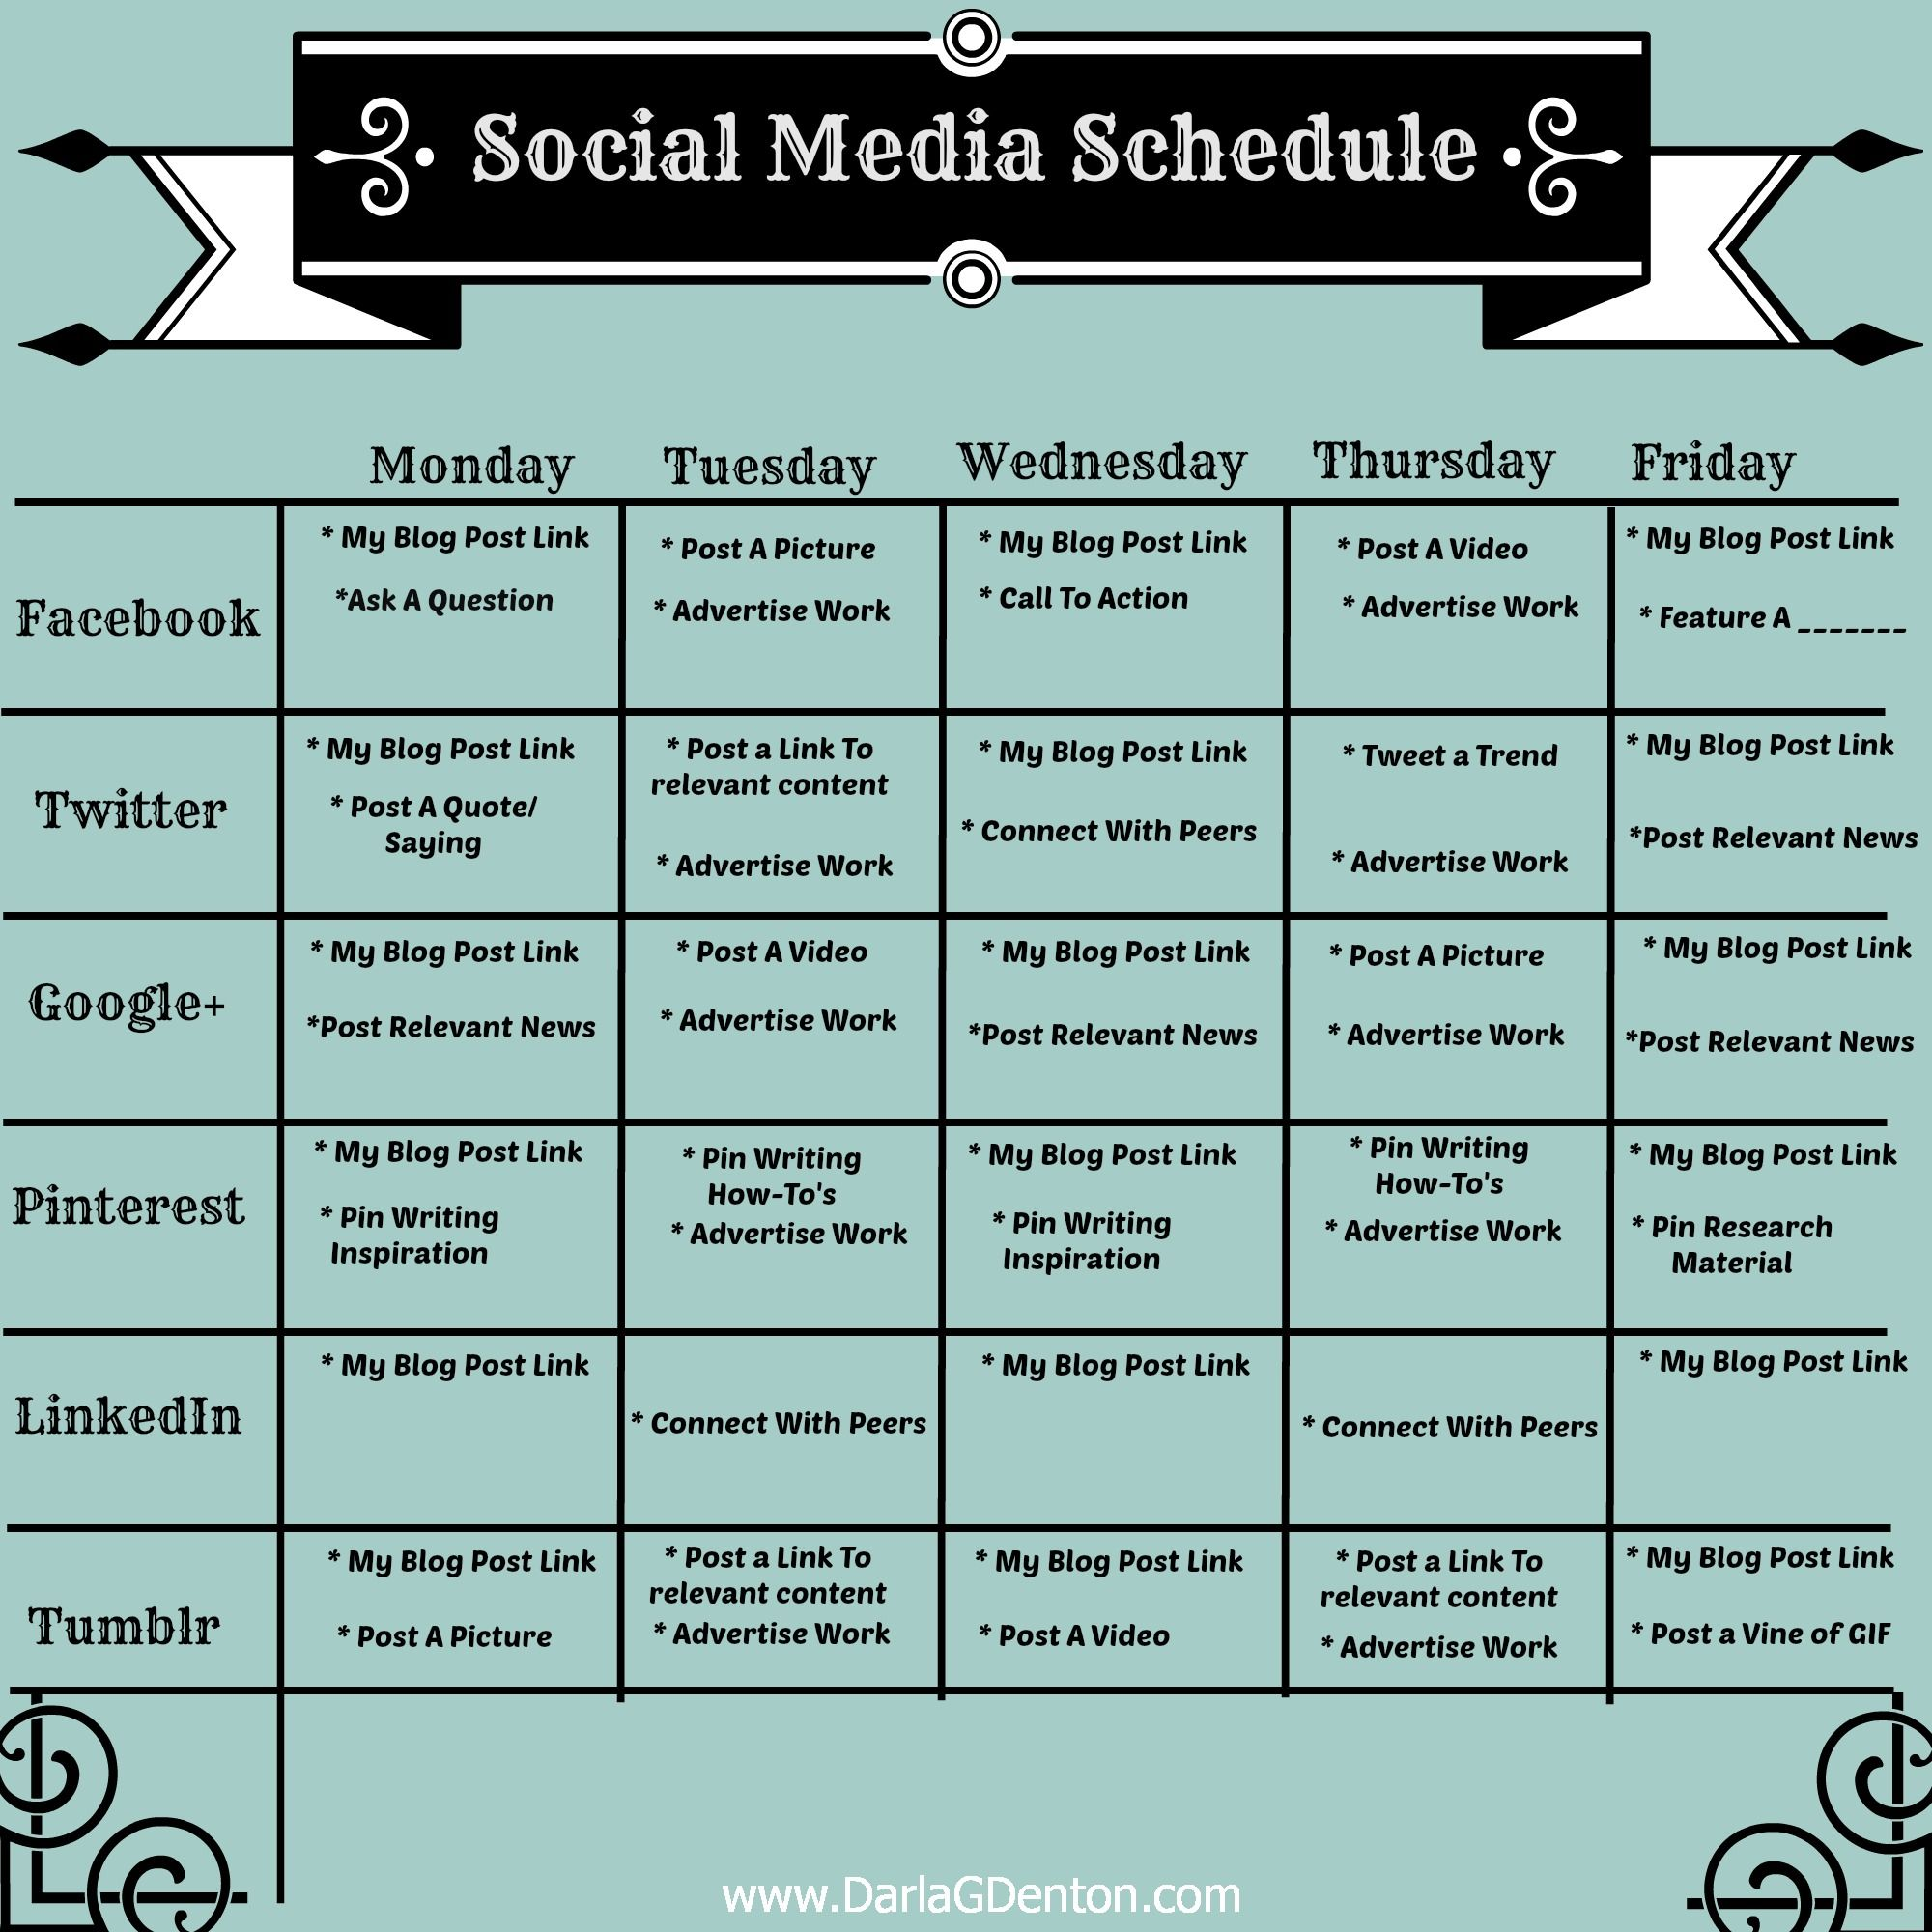 Social Media Calendar Template Socialmediapostingschedulejpg - Social media post template